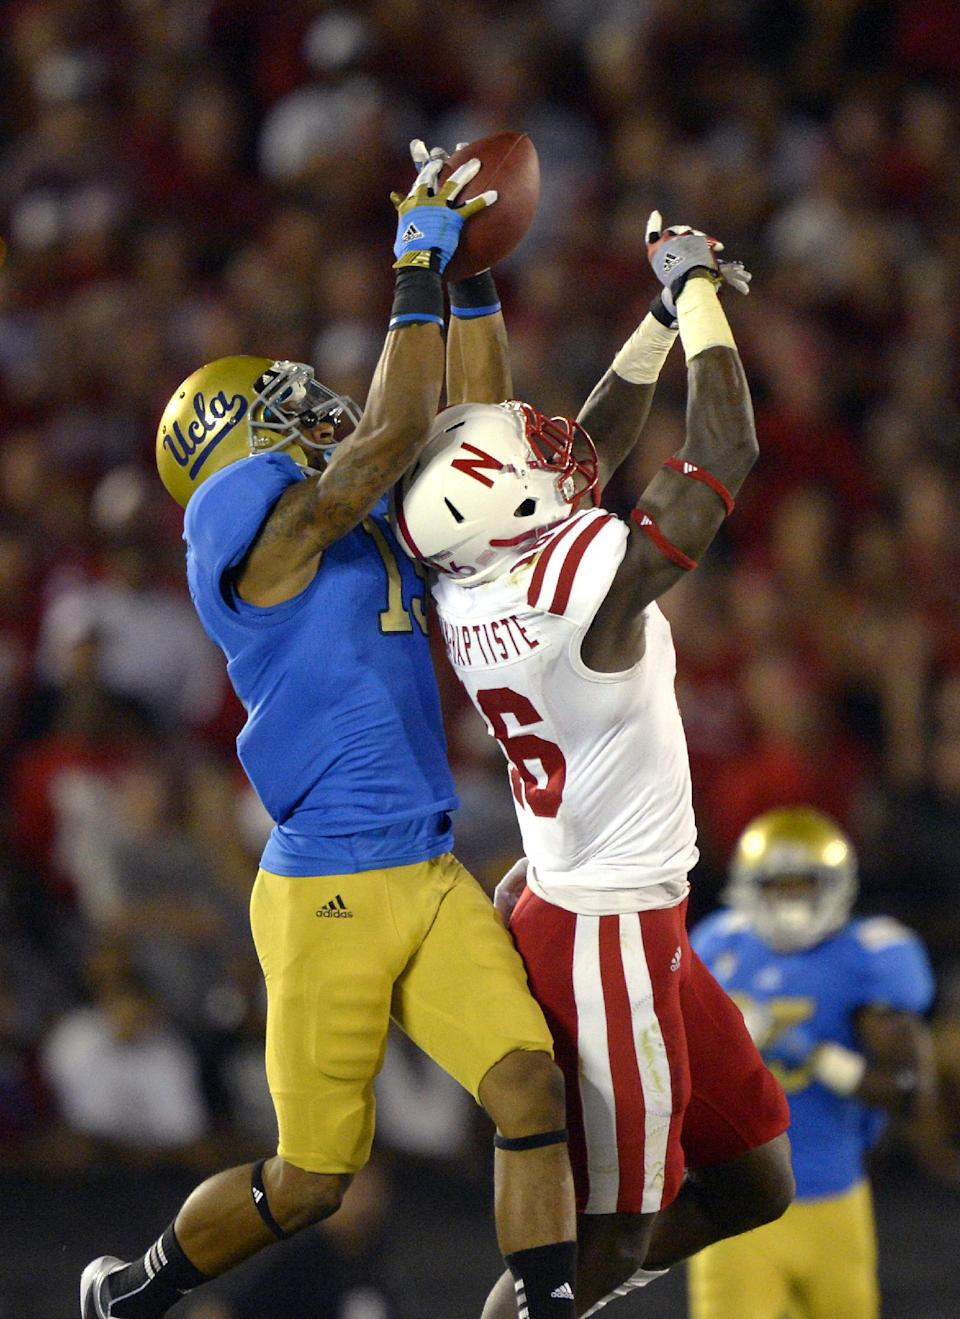 UCLA wide receiver Devin Lucien, left, catches a pass as Nebraska cornerback Stanley Jean-Baptiste defends during the second half of their NCAA football game, Saturday, Sept. 8, 2012, in Pasadena, Calif.   UCLA won 36-30. (AP Photo/Mark J. Terrill)